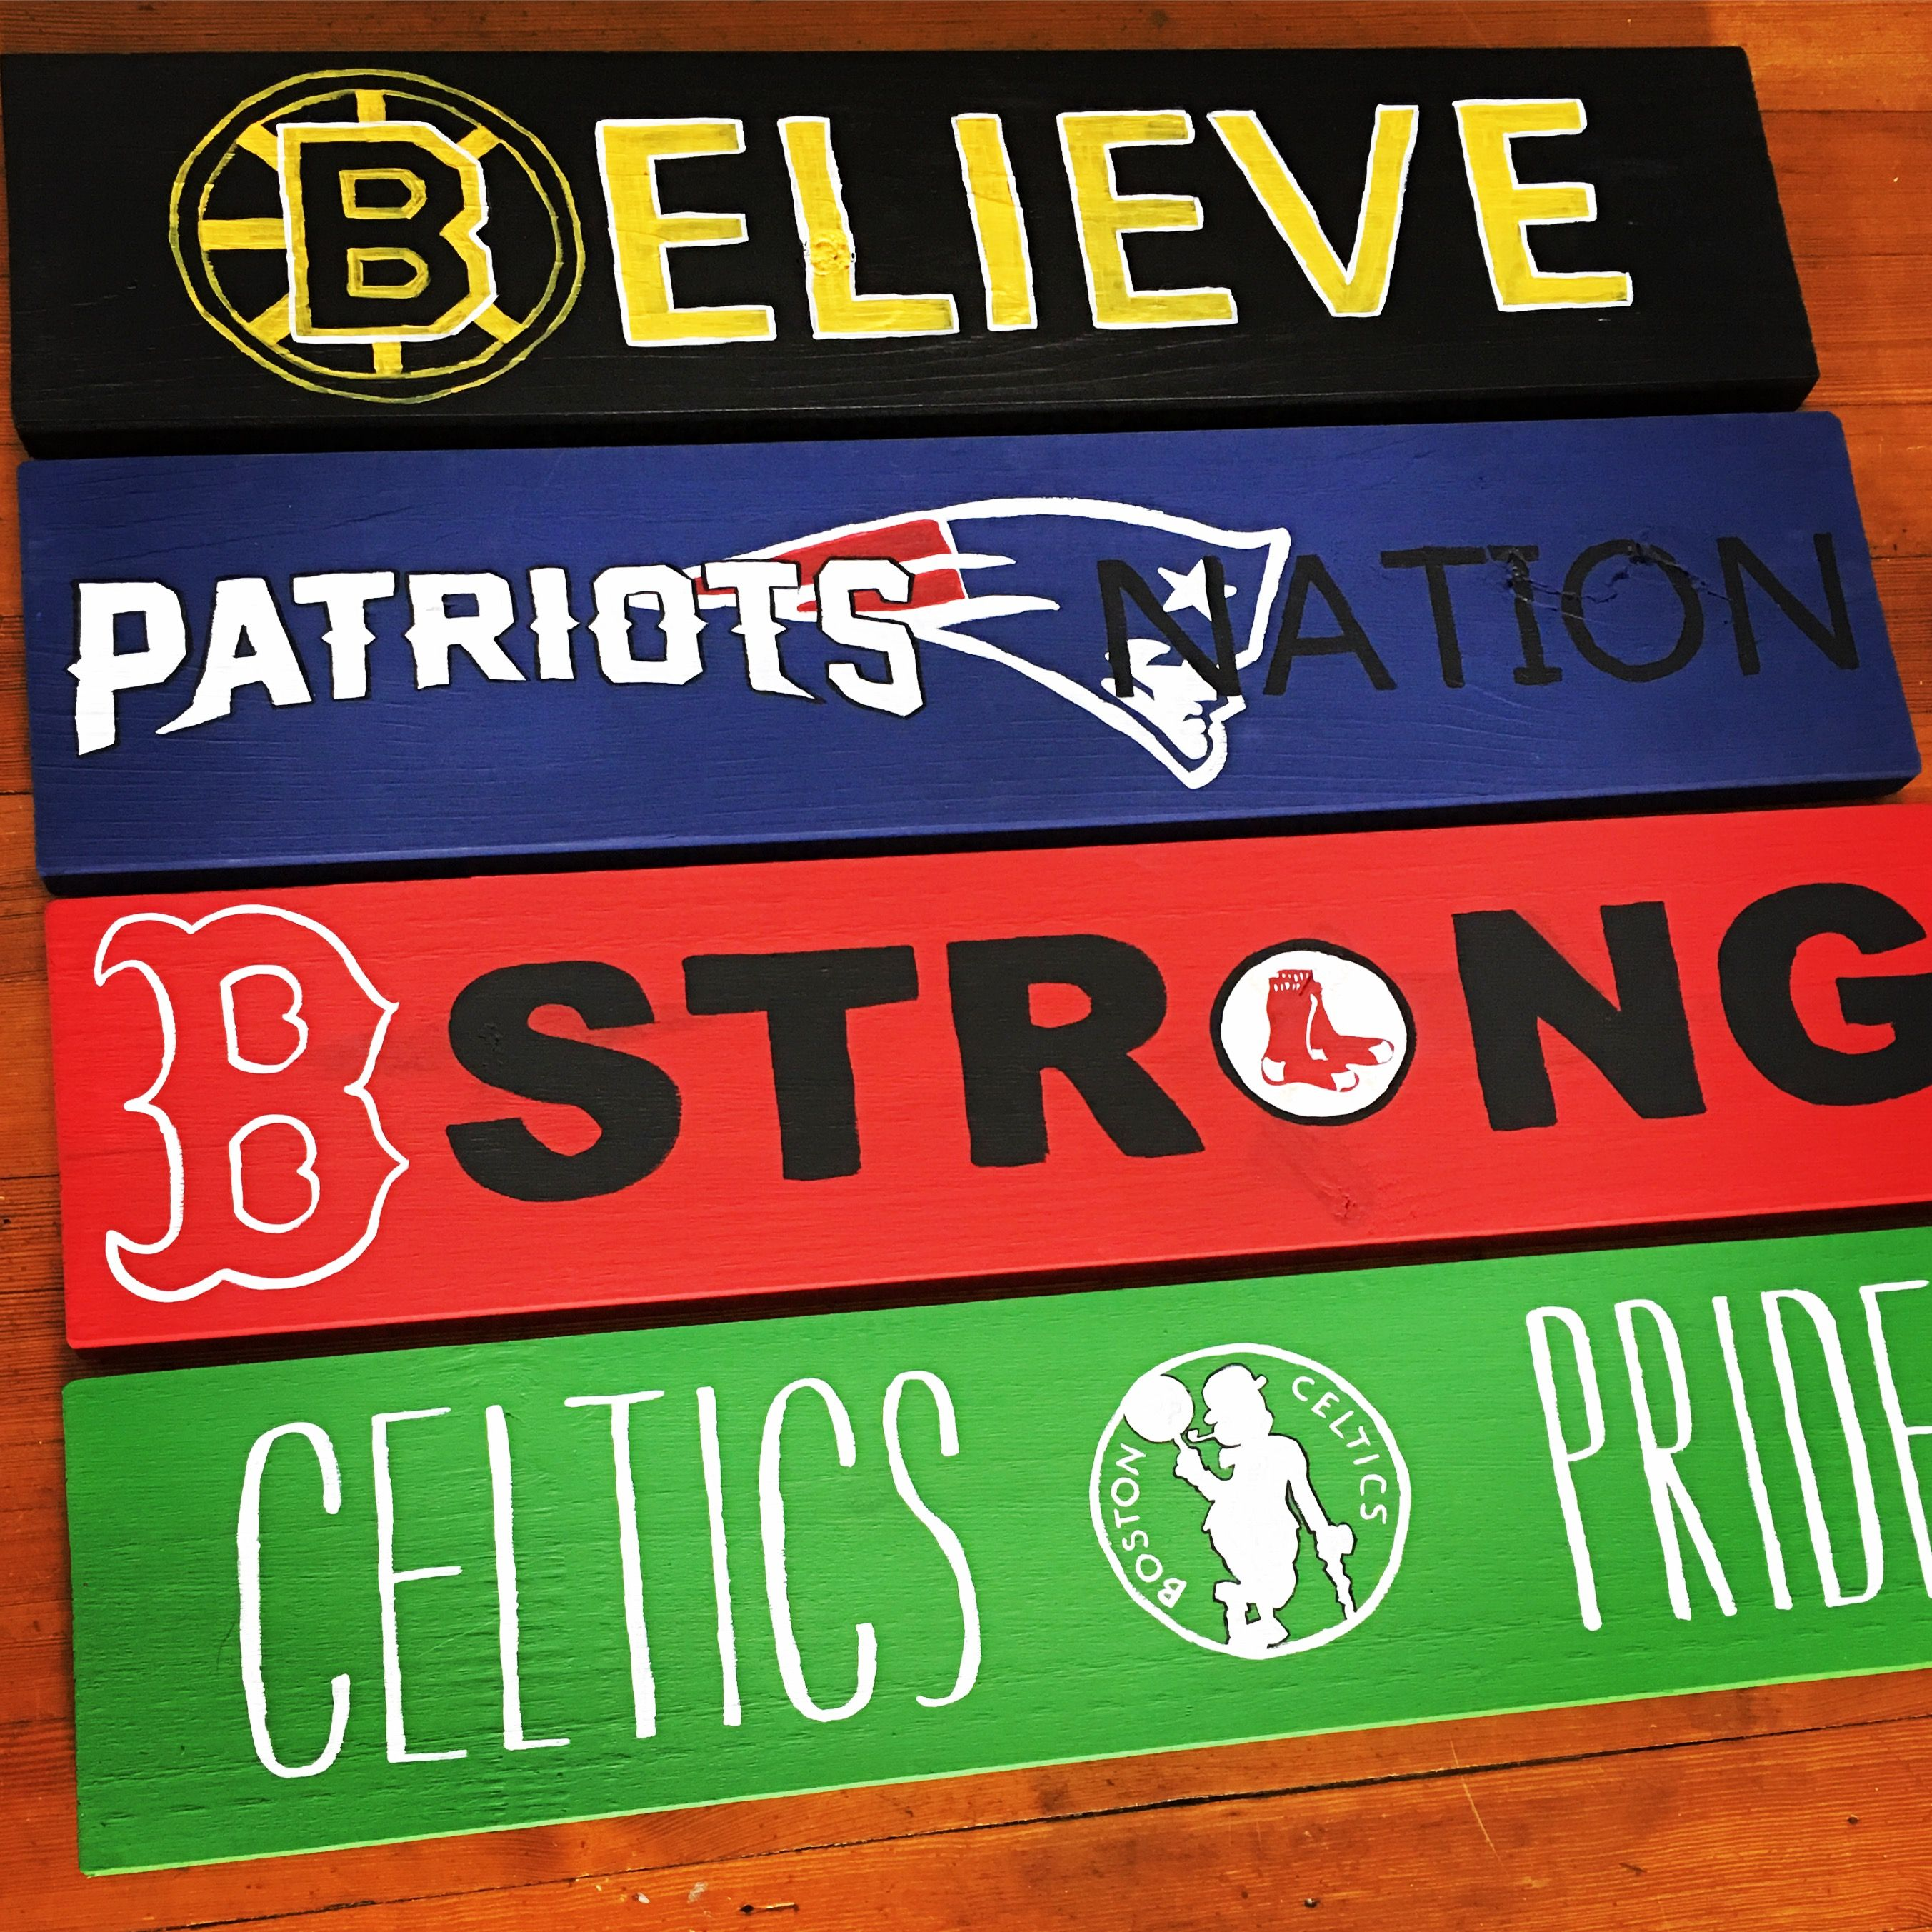 Boston Bruins New England Patriots Red Sox Celtics Sports Wood